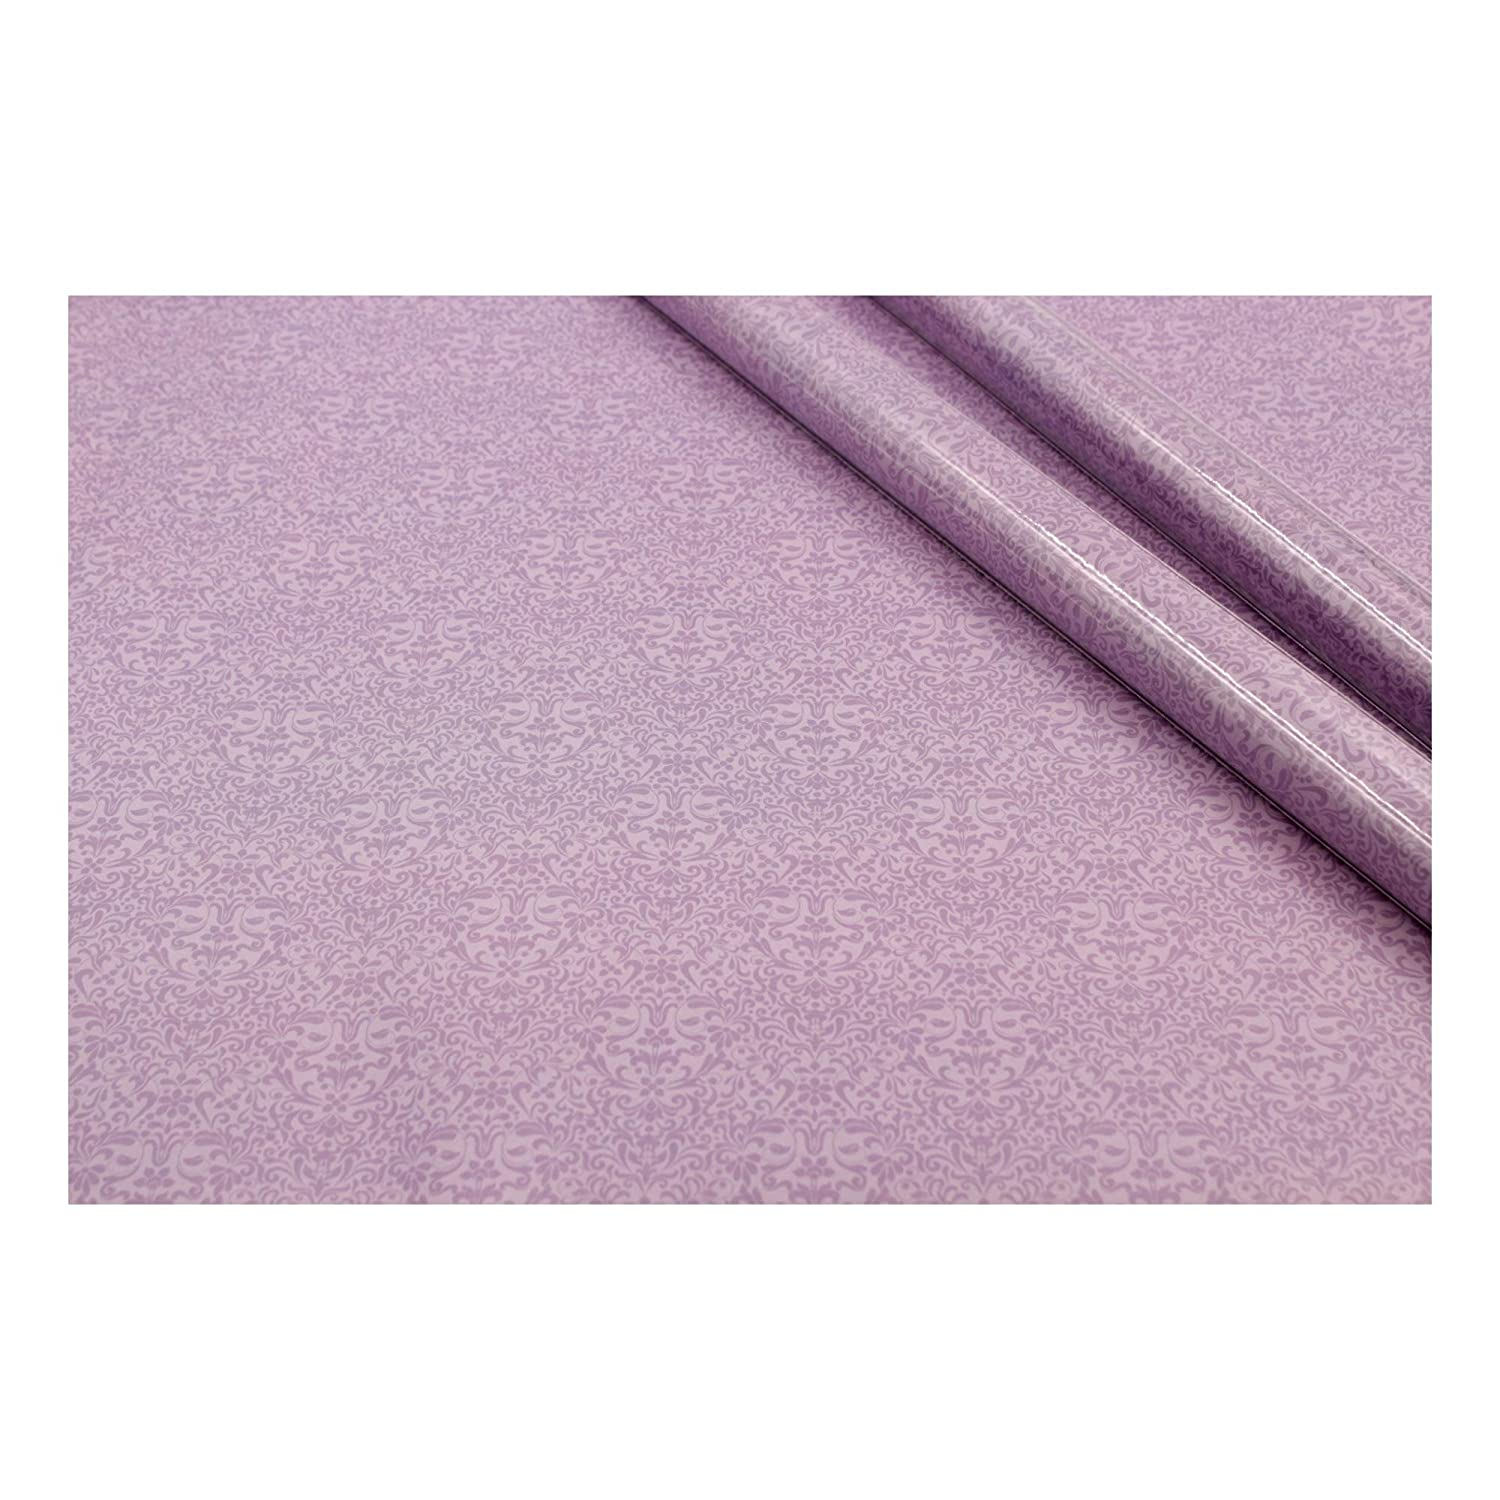 9x Scented Paper Drawer Liners Non-Adhesive - Lavender Scent West5Products